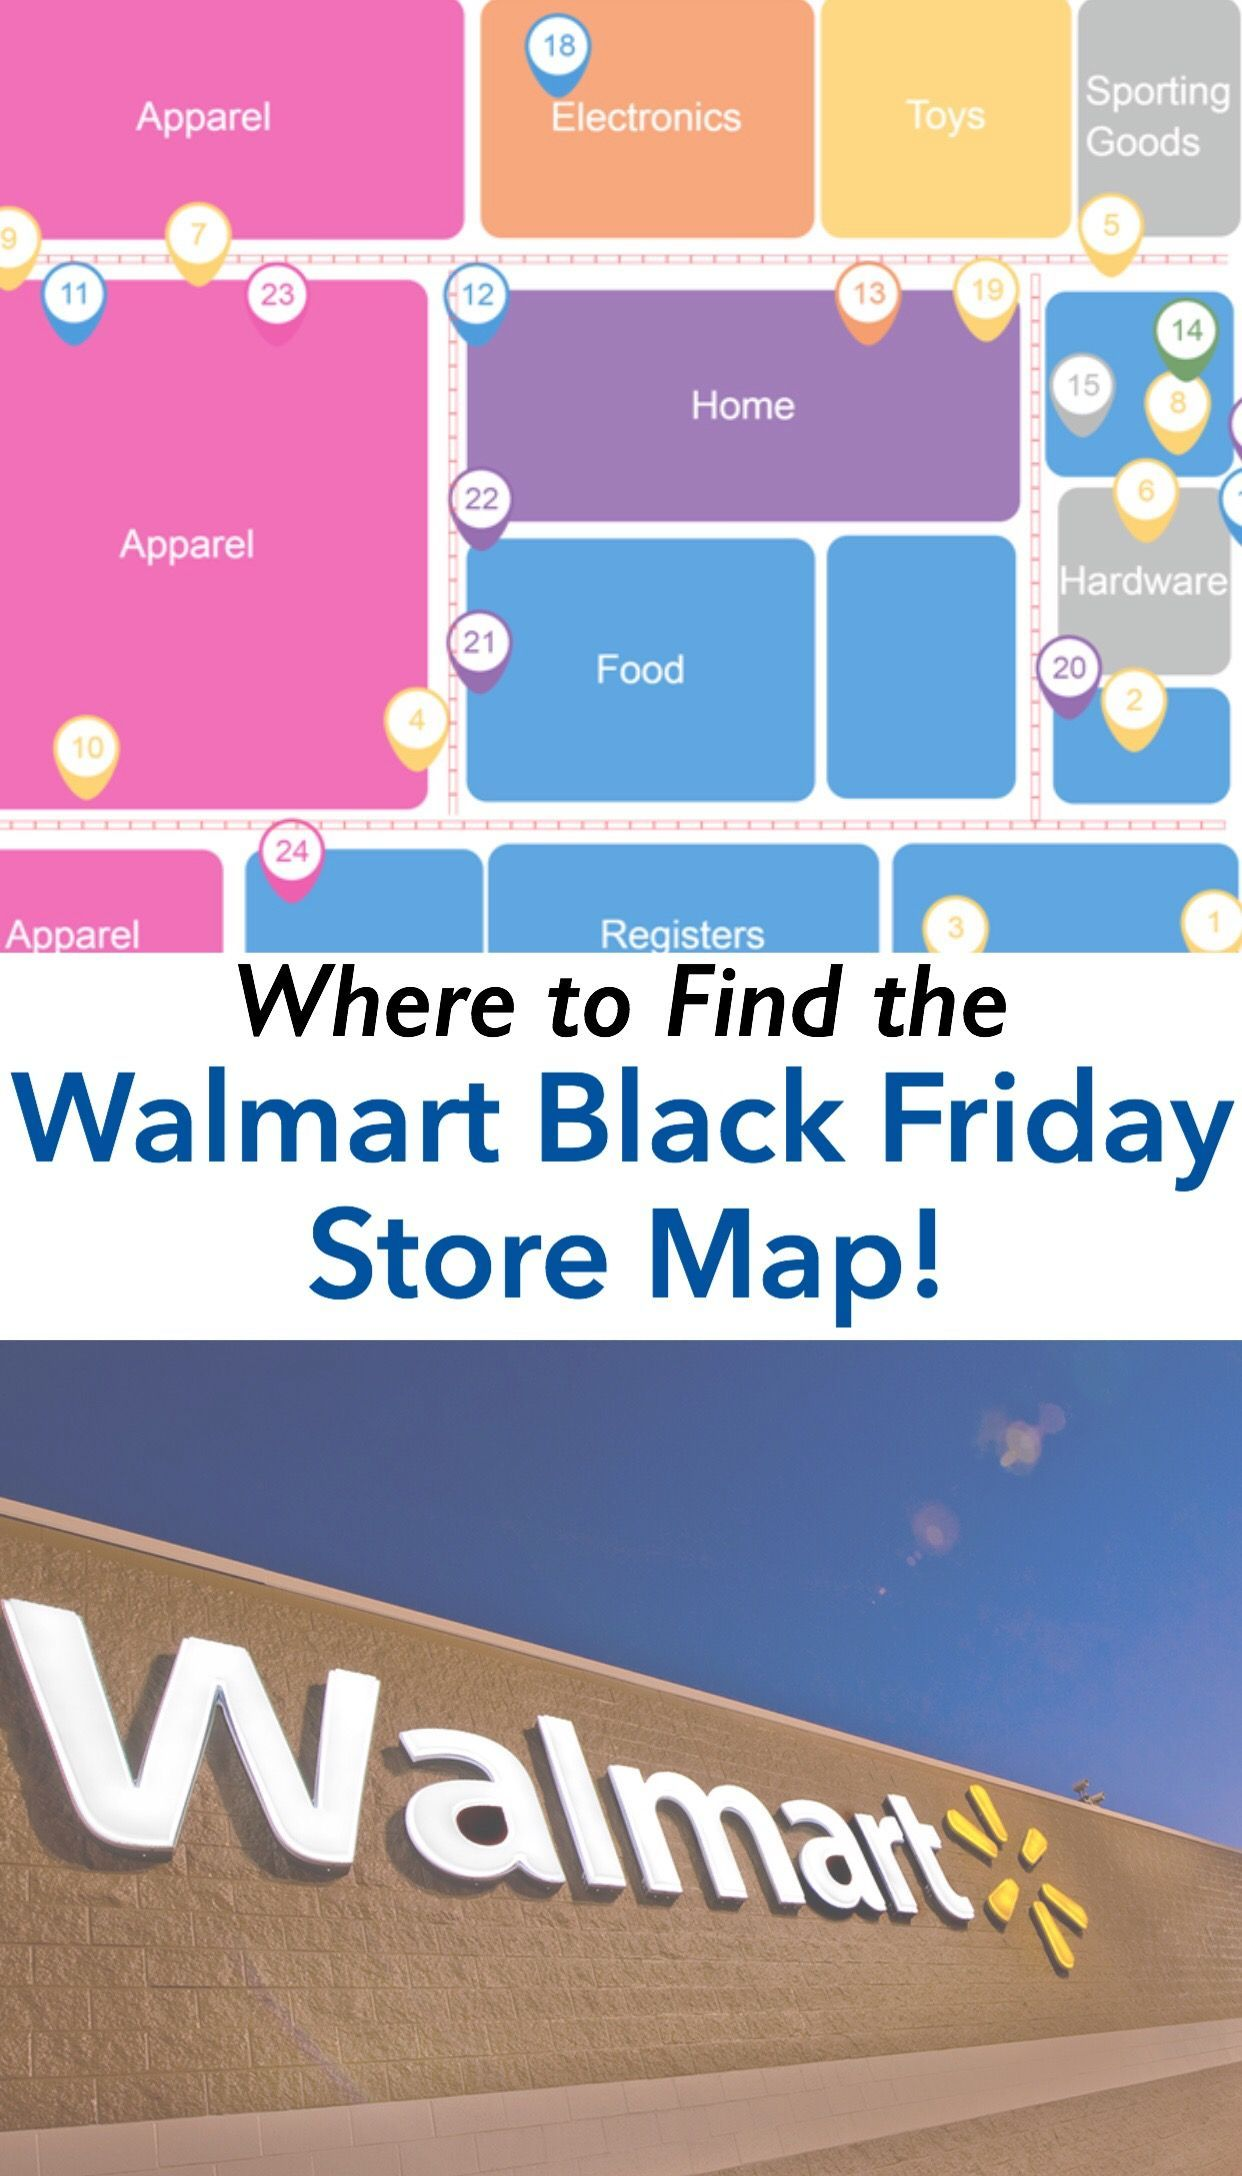 Where To Find The Walmart Black Friday Store Map Layout Bradsdeals Walmart Blackfriday Walmartblackfriday Walmart Black Friday Stores Walmart Map Layout